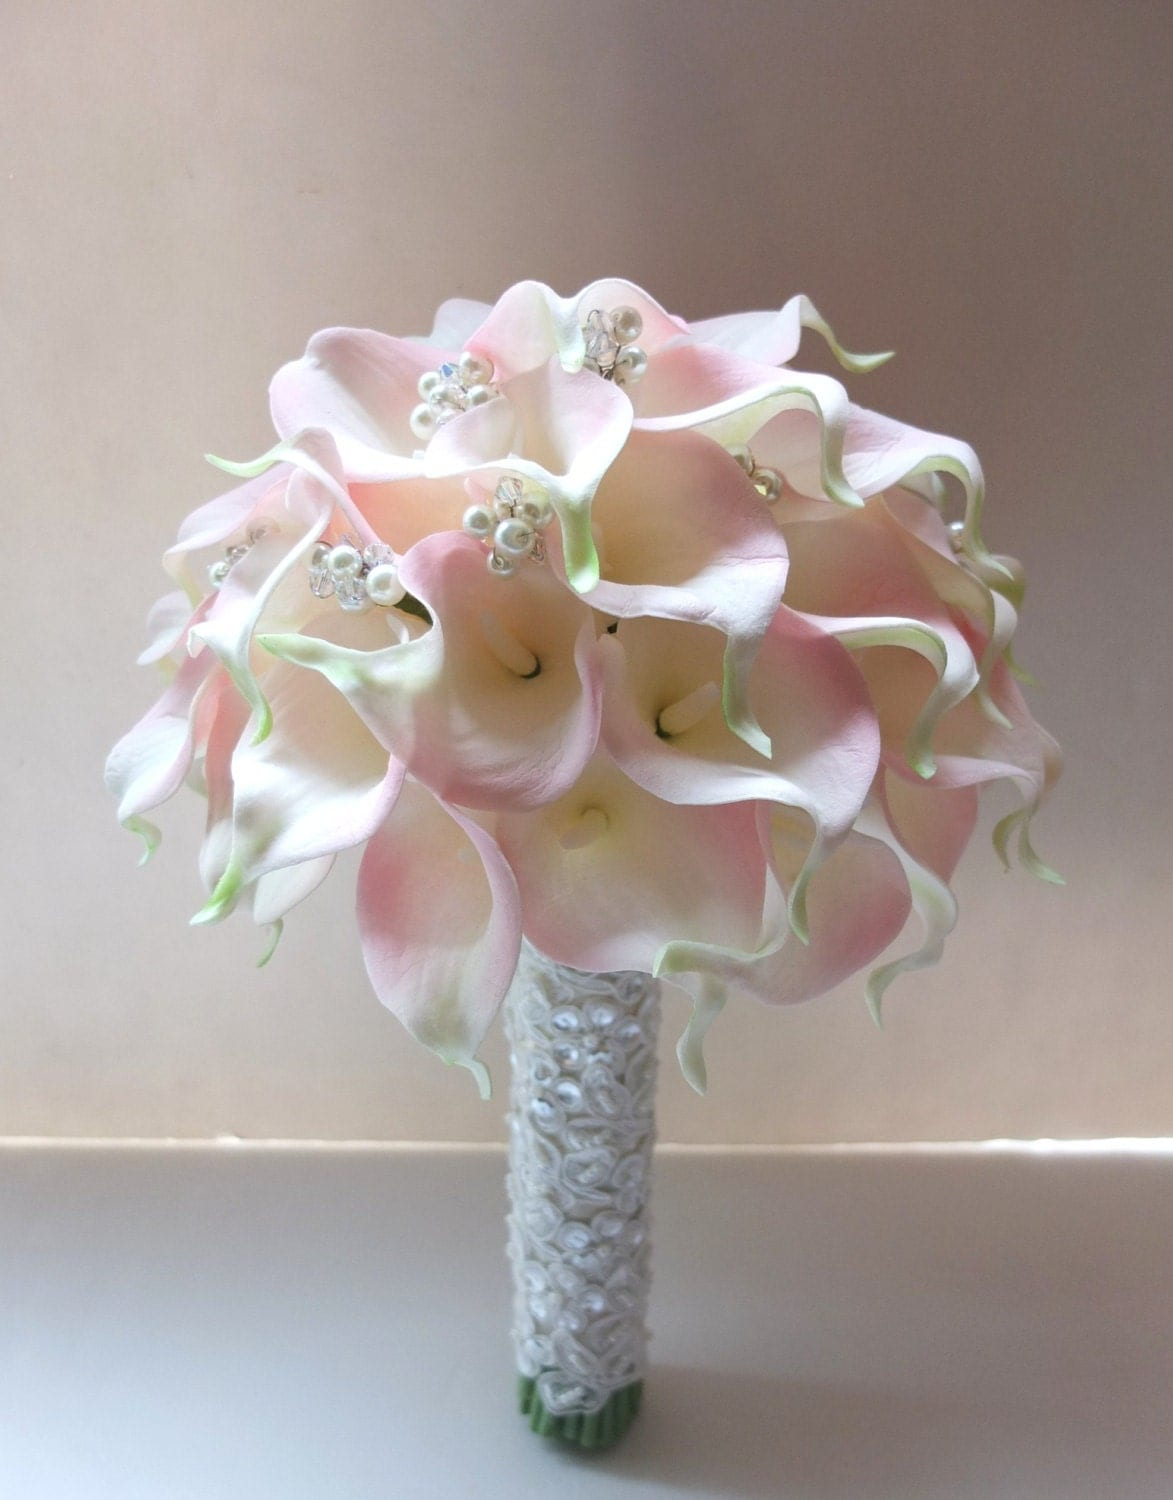 Blush pink calla lily bouquet accented with pearls